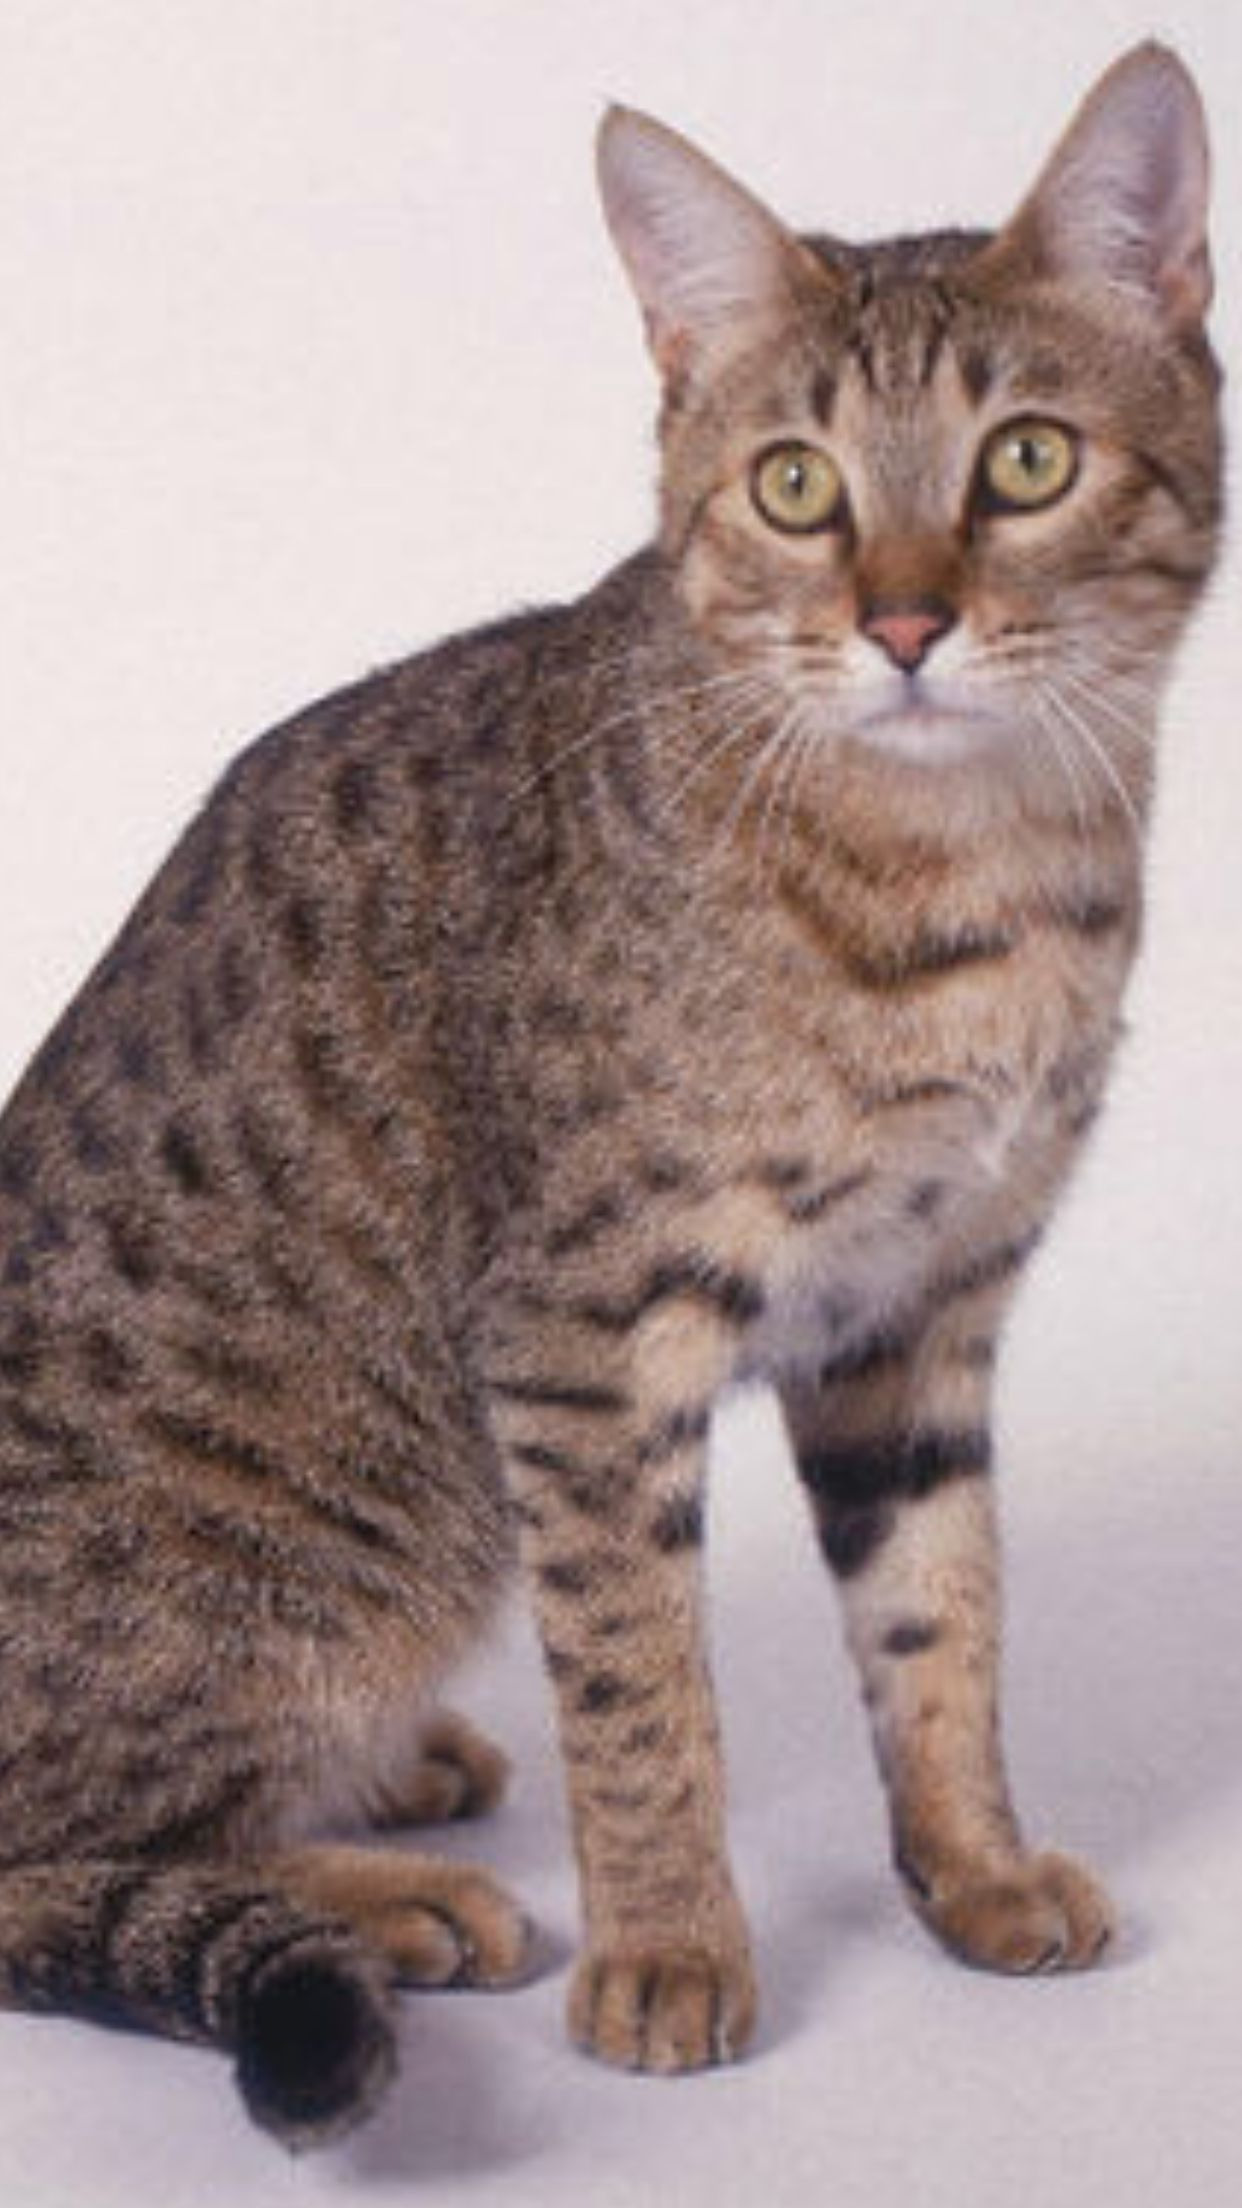 California Spangled Rare Cat Breeds Rare Cats Cat Breeds